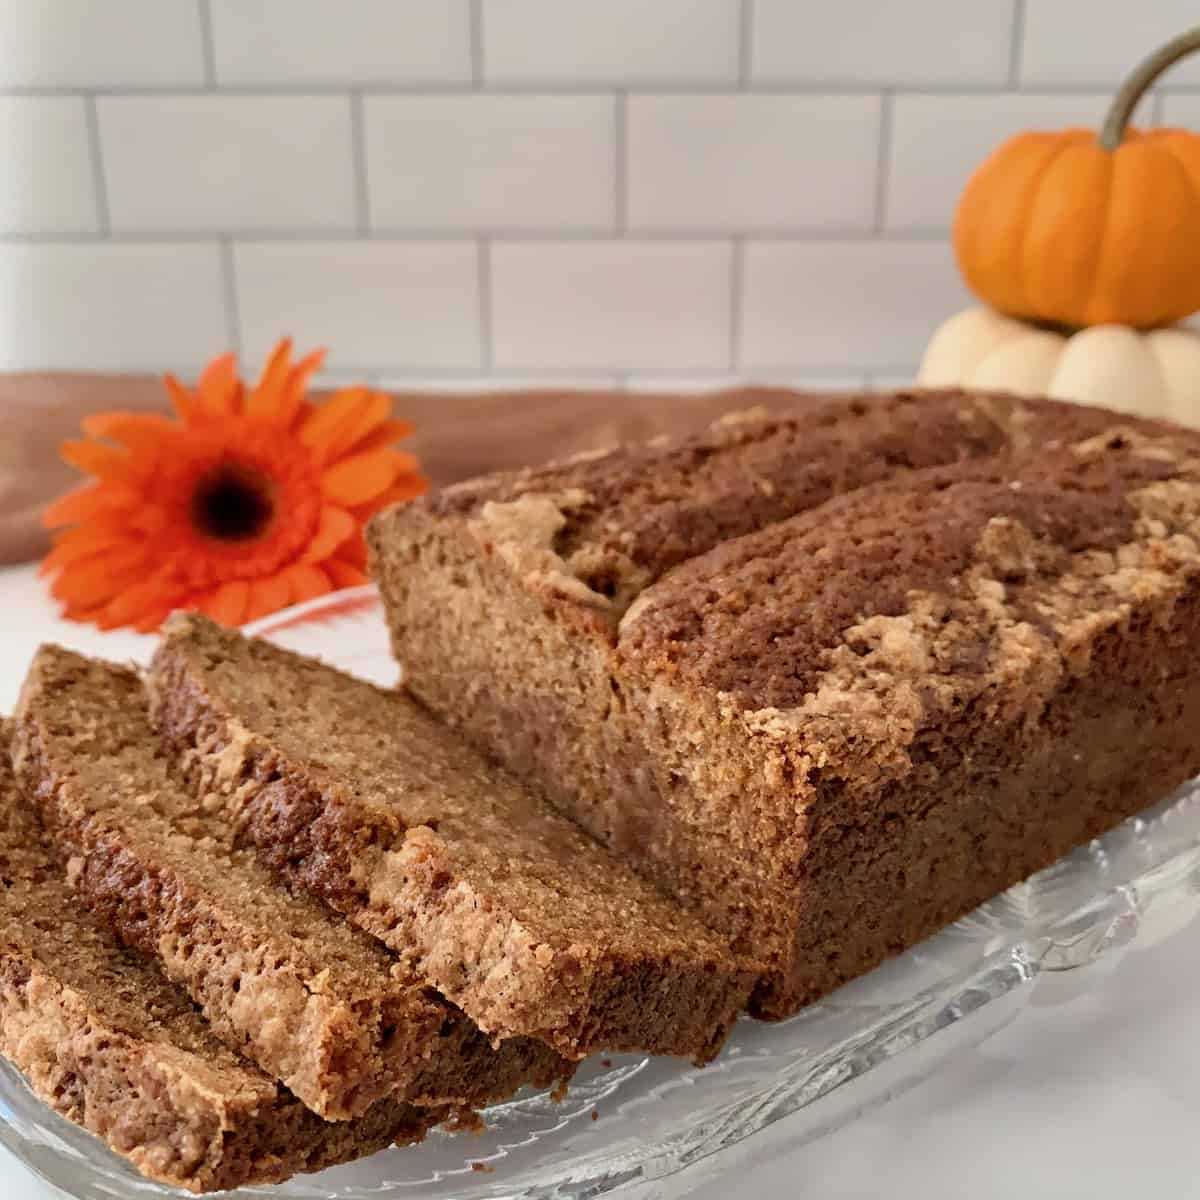 Sourdough Spice Cake sliced on plate with pumpkins.